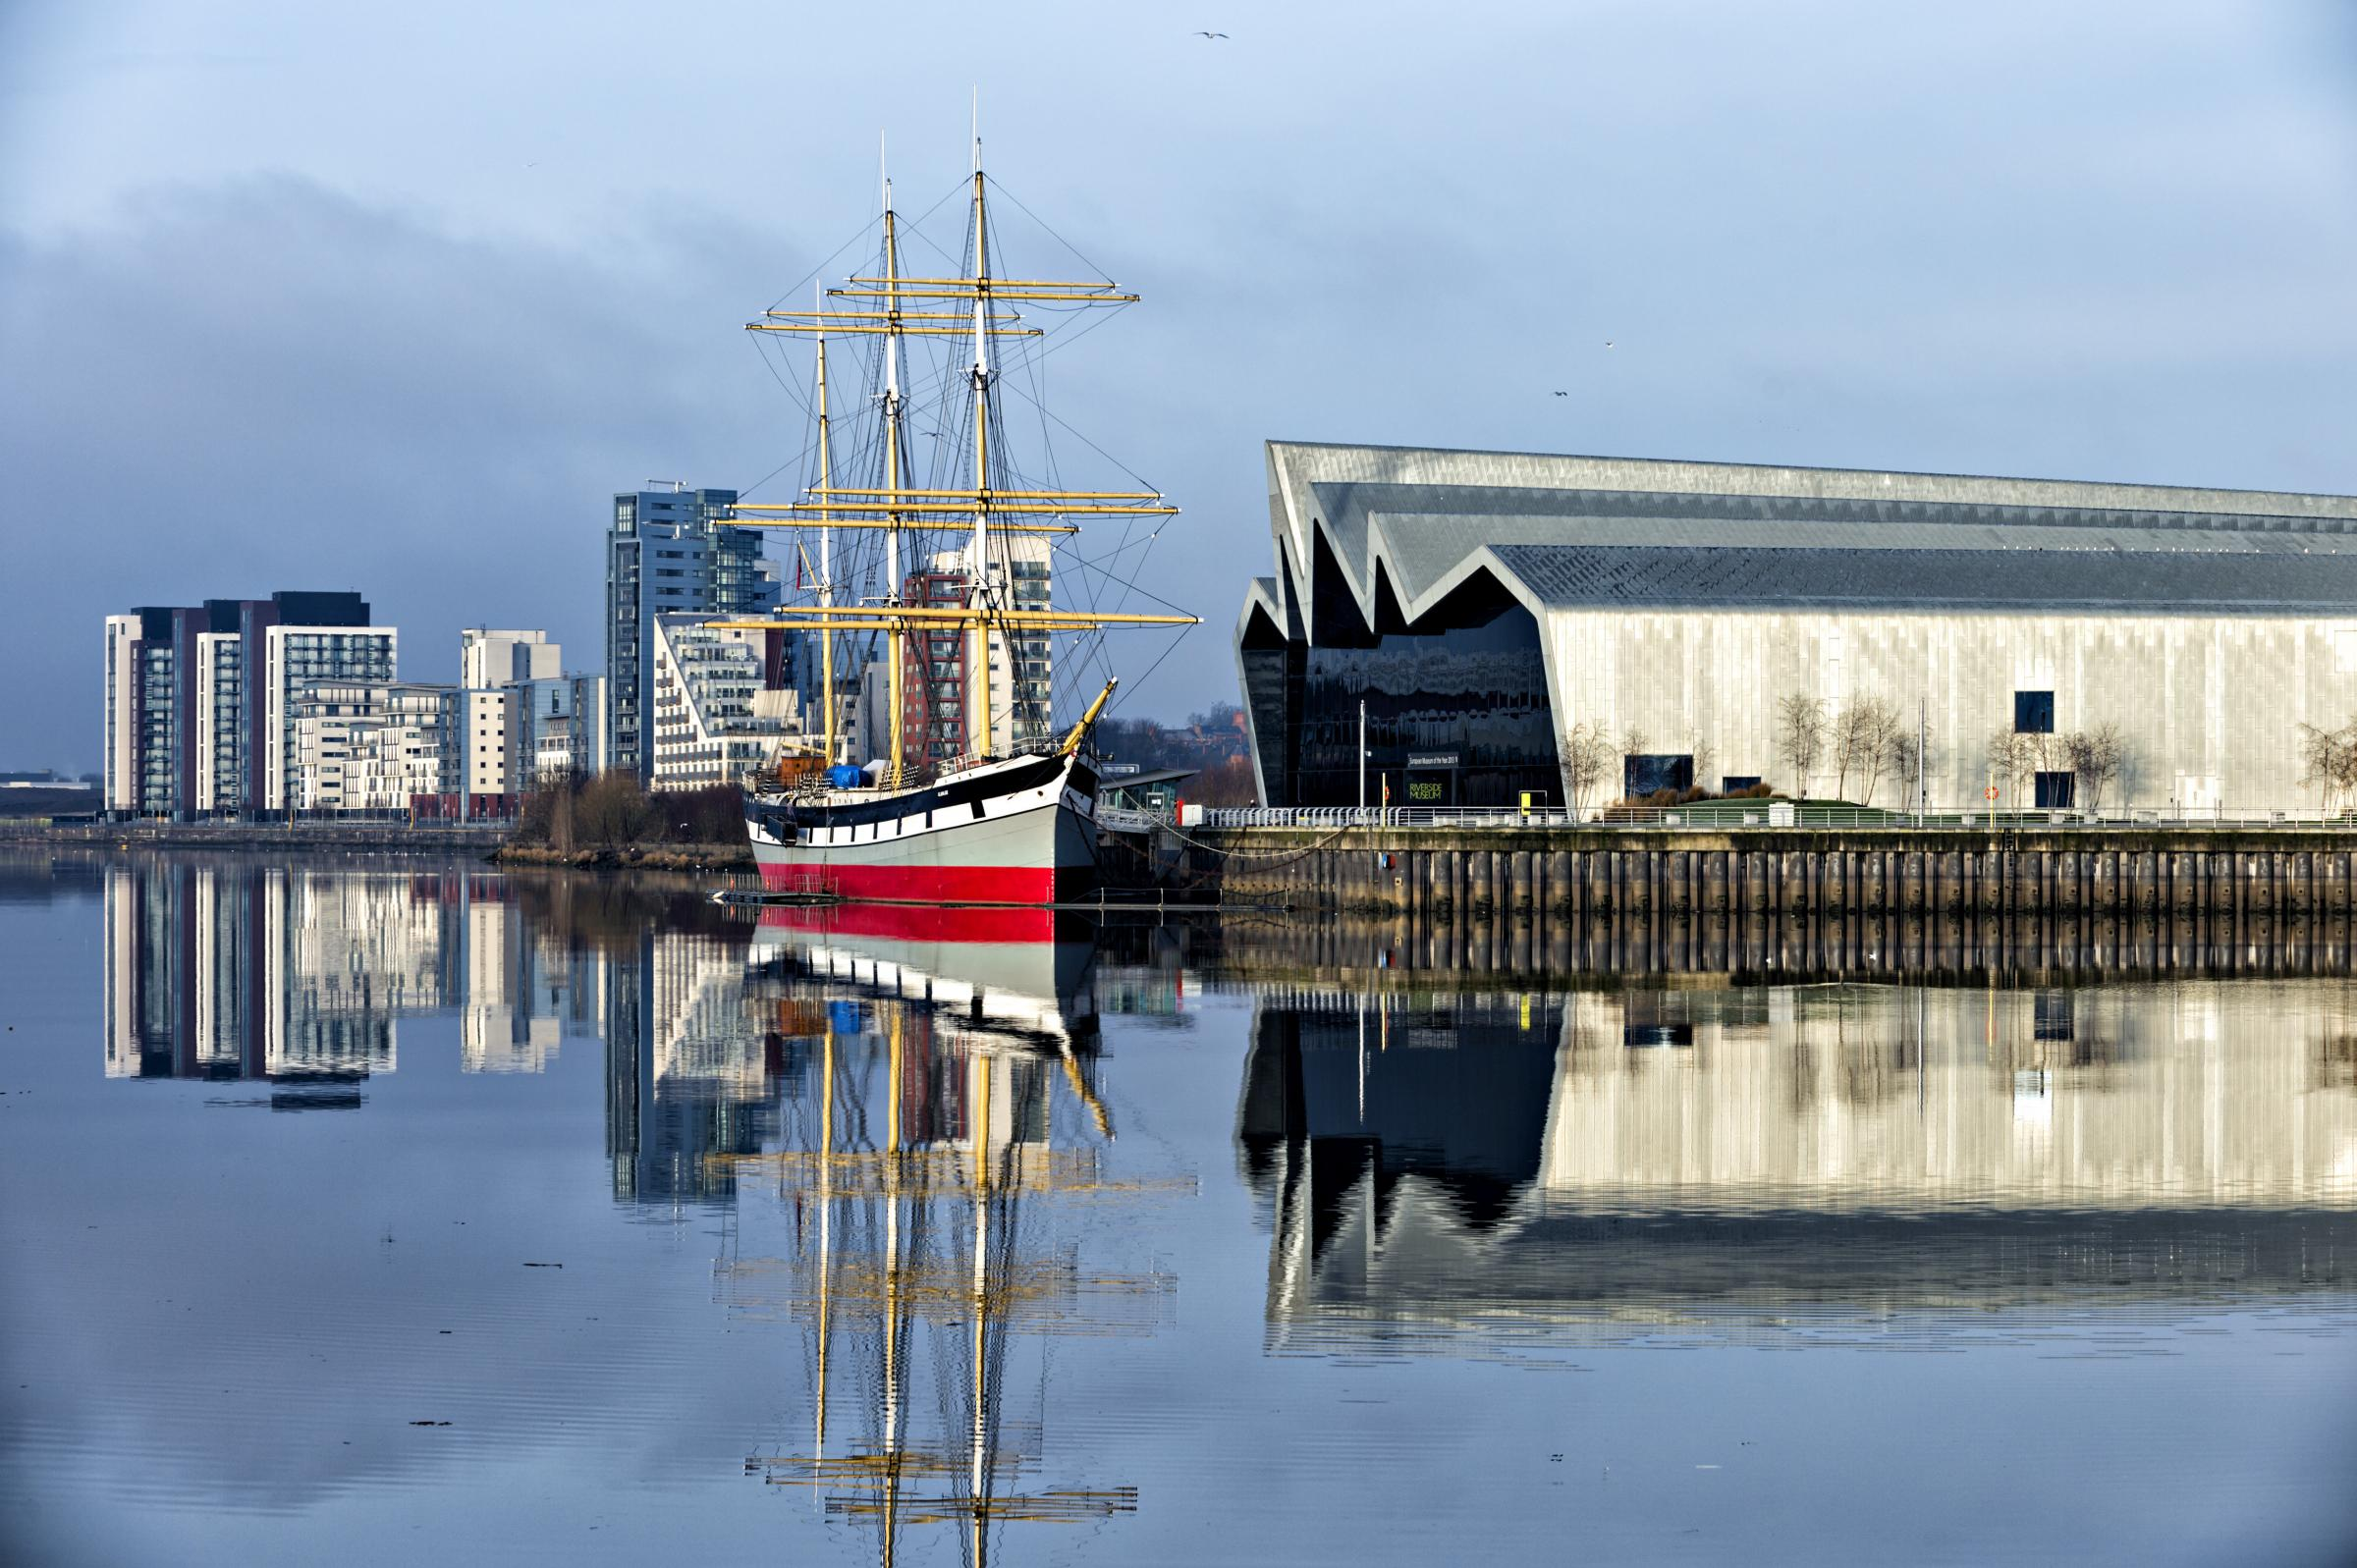 Tiew the tall ship Glenlee moored alongside the Riverside Museum